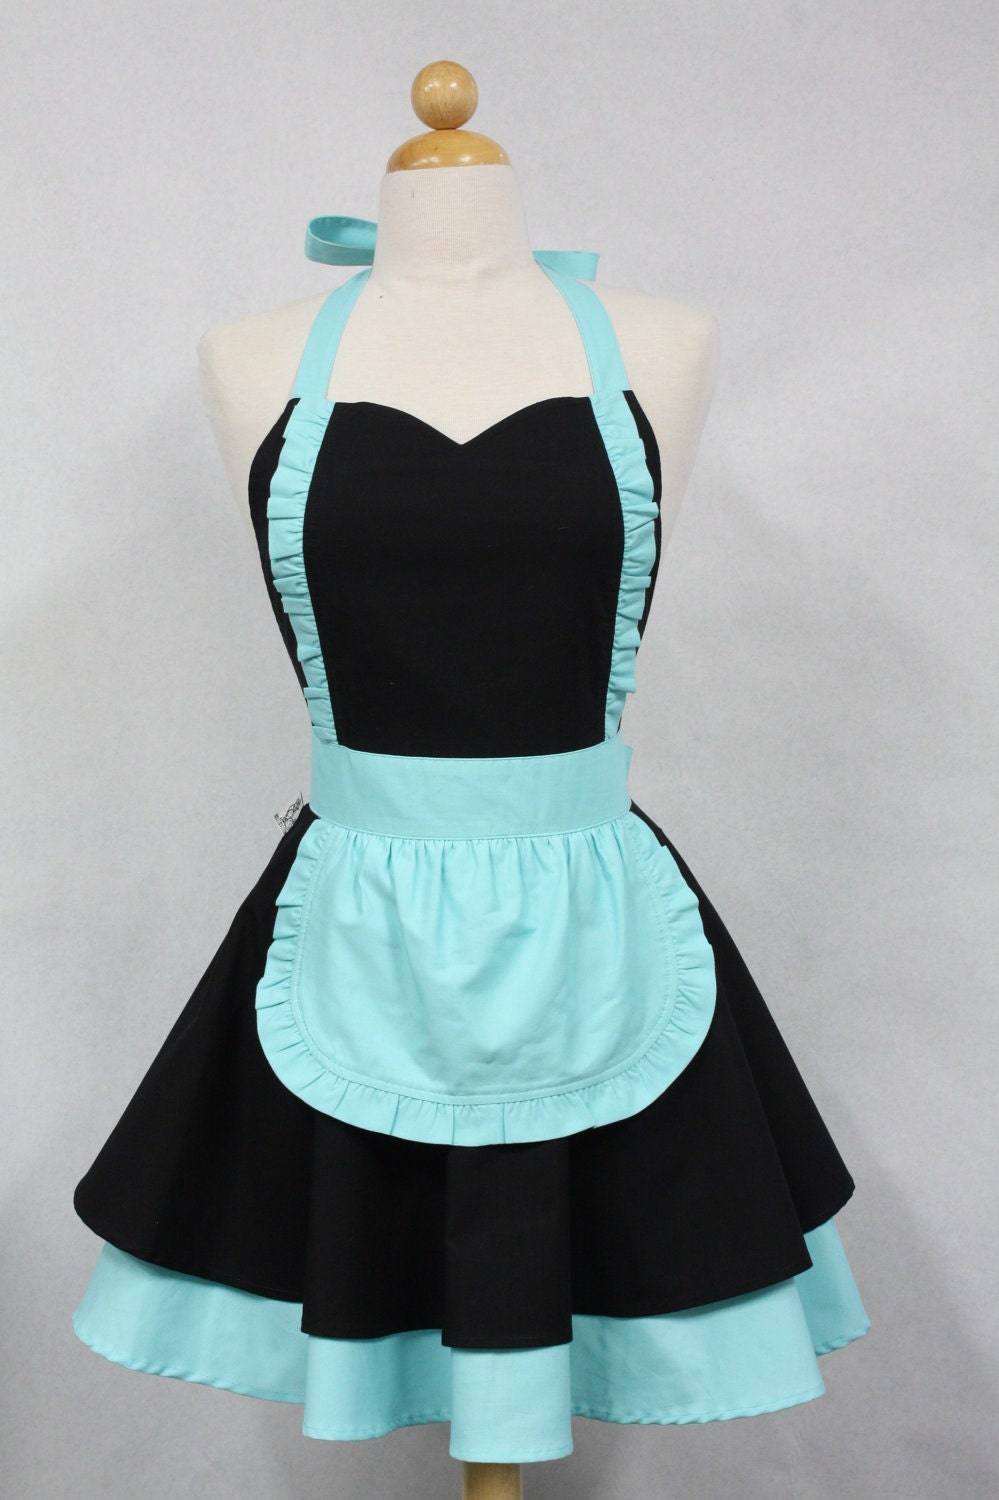 apron french maid solid black with aqua double circle skirt. Black Bedroom Furniture Sets. Home Design Ideas